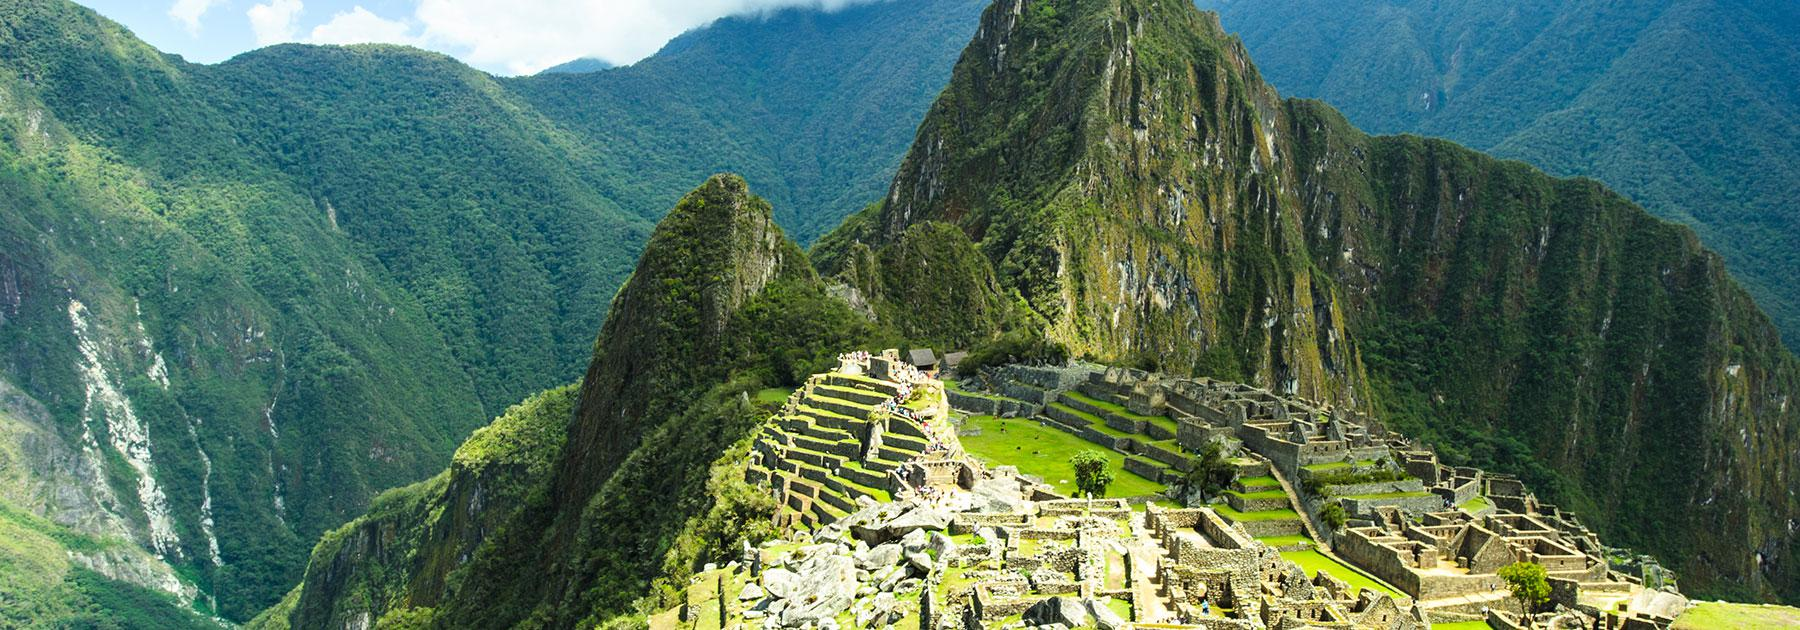 Group Vacations To Peru With Airfare From Go Today